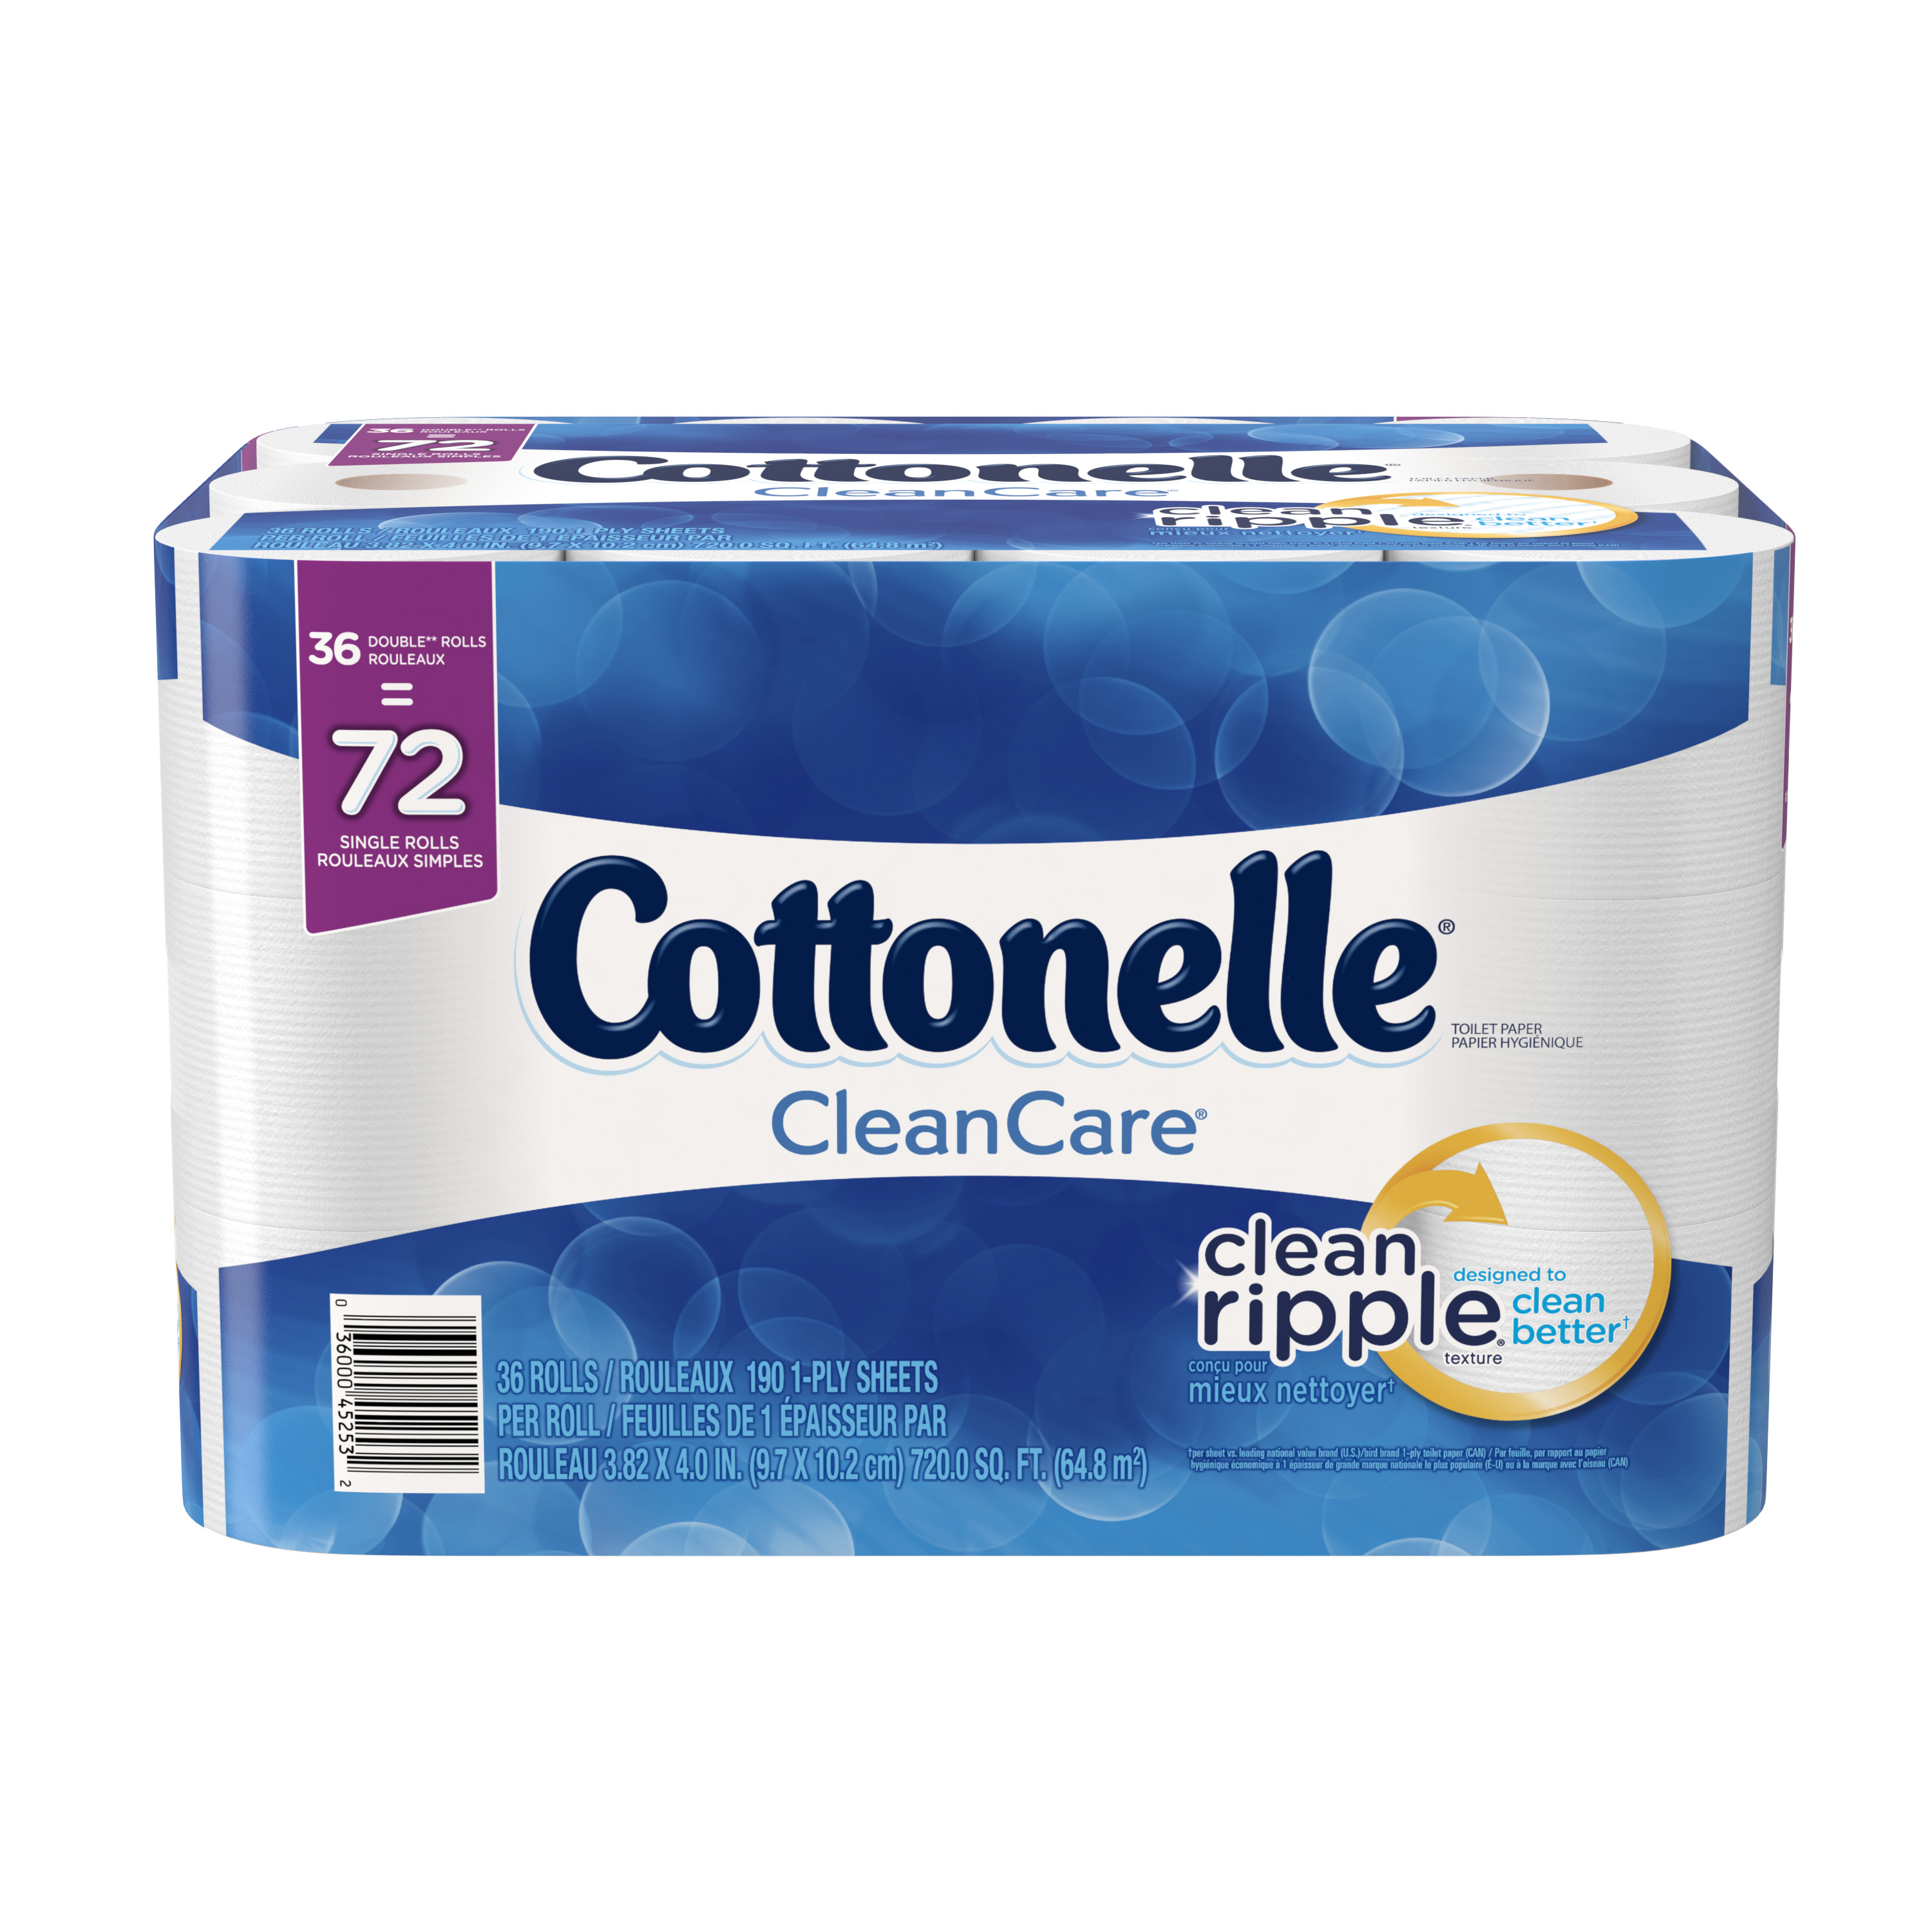 Cottonelle Clean Care Double Roll Toilet Paper, 190 sHeets, 36 rolls by Kimberly-Clark Global Sales, LLC / Kimberly-Clark Corp.